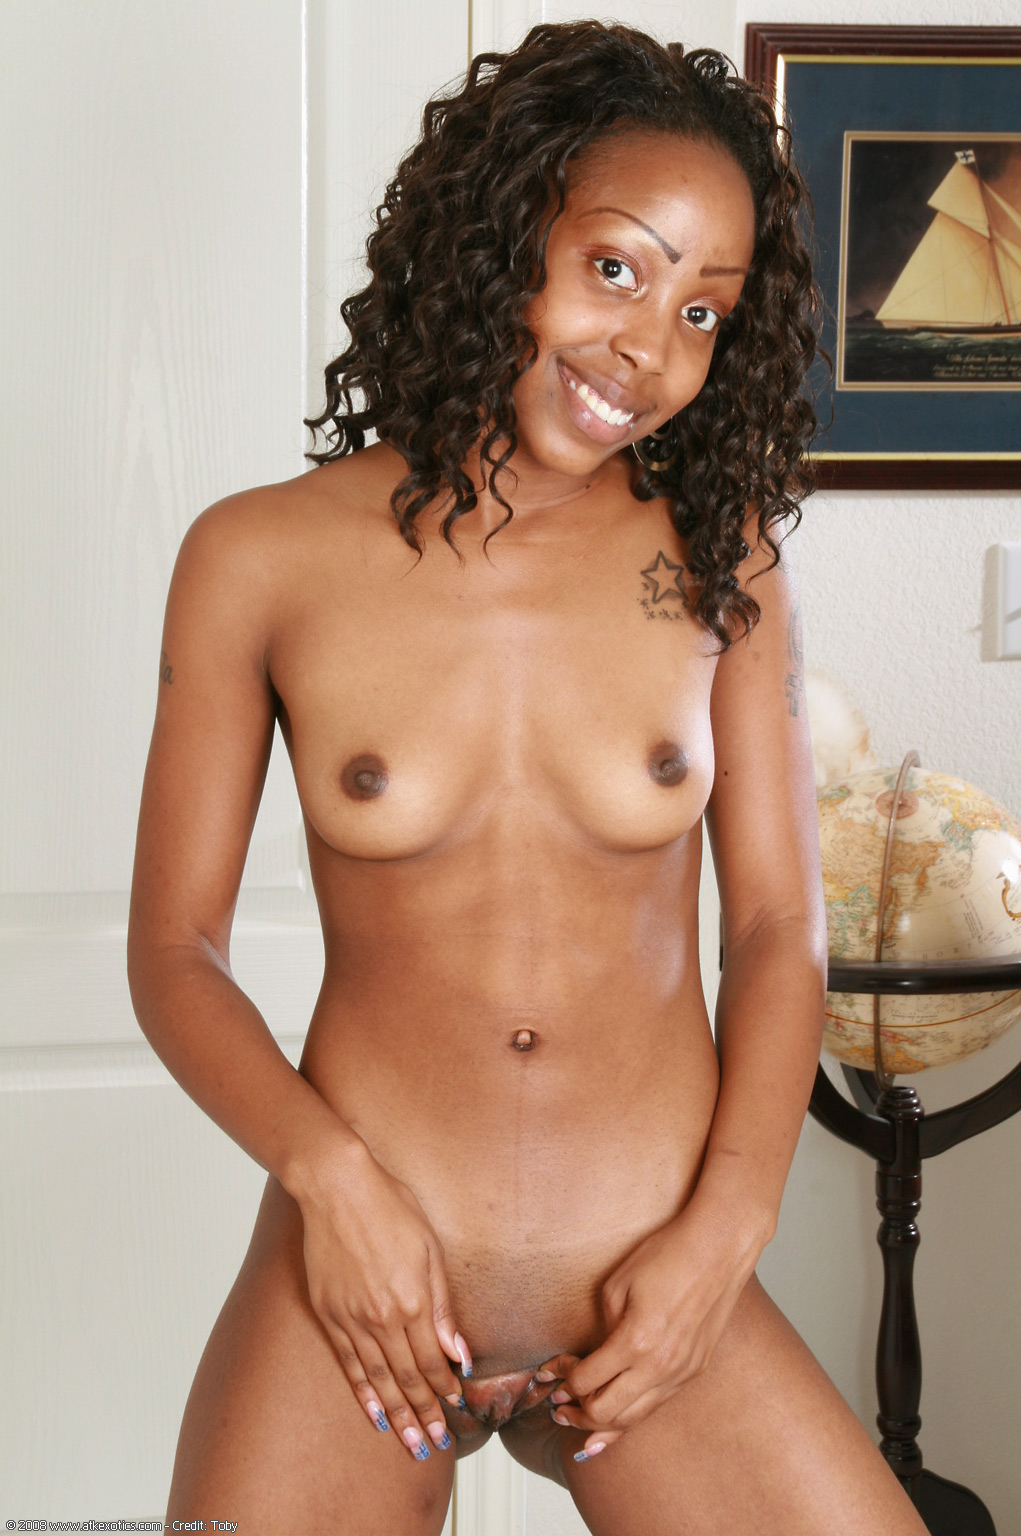 Black female model galleries naked